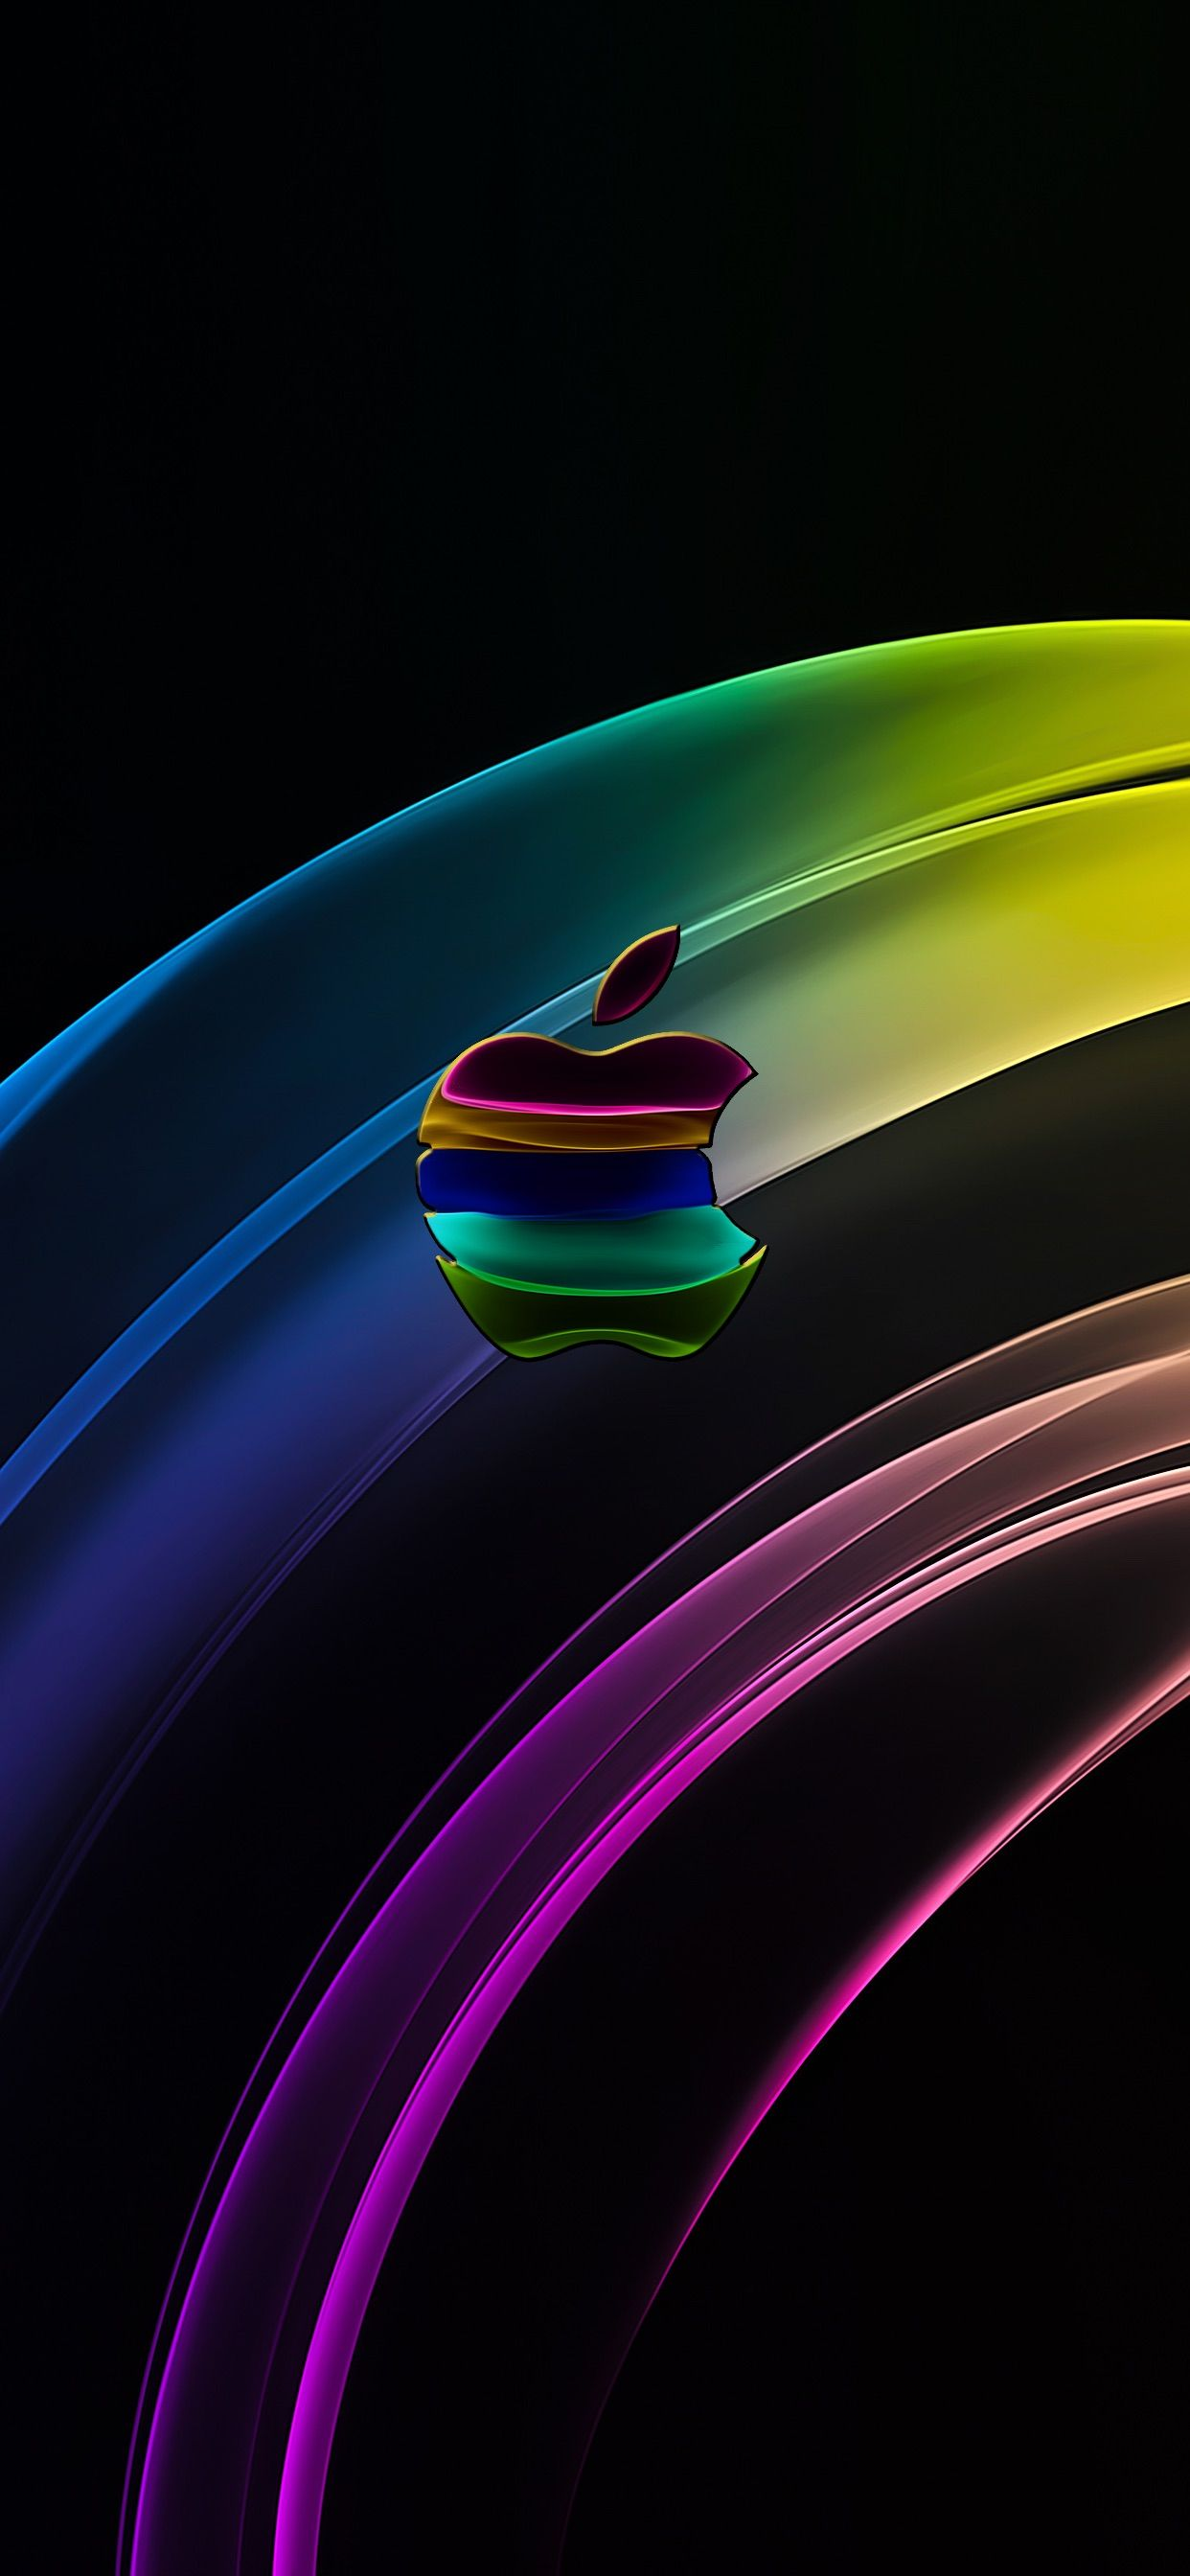 Pin By Privaterayan On Sick Wallpapers Apple Wallpaper Phone